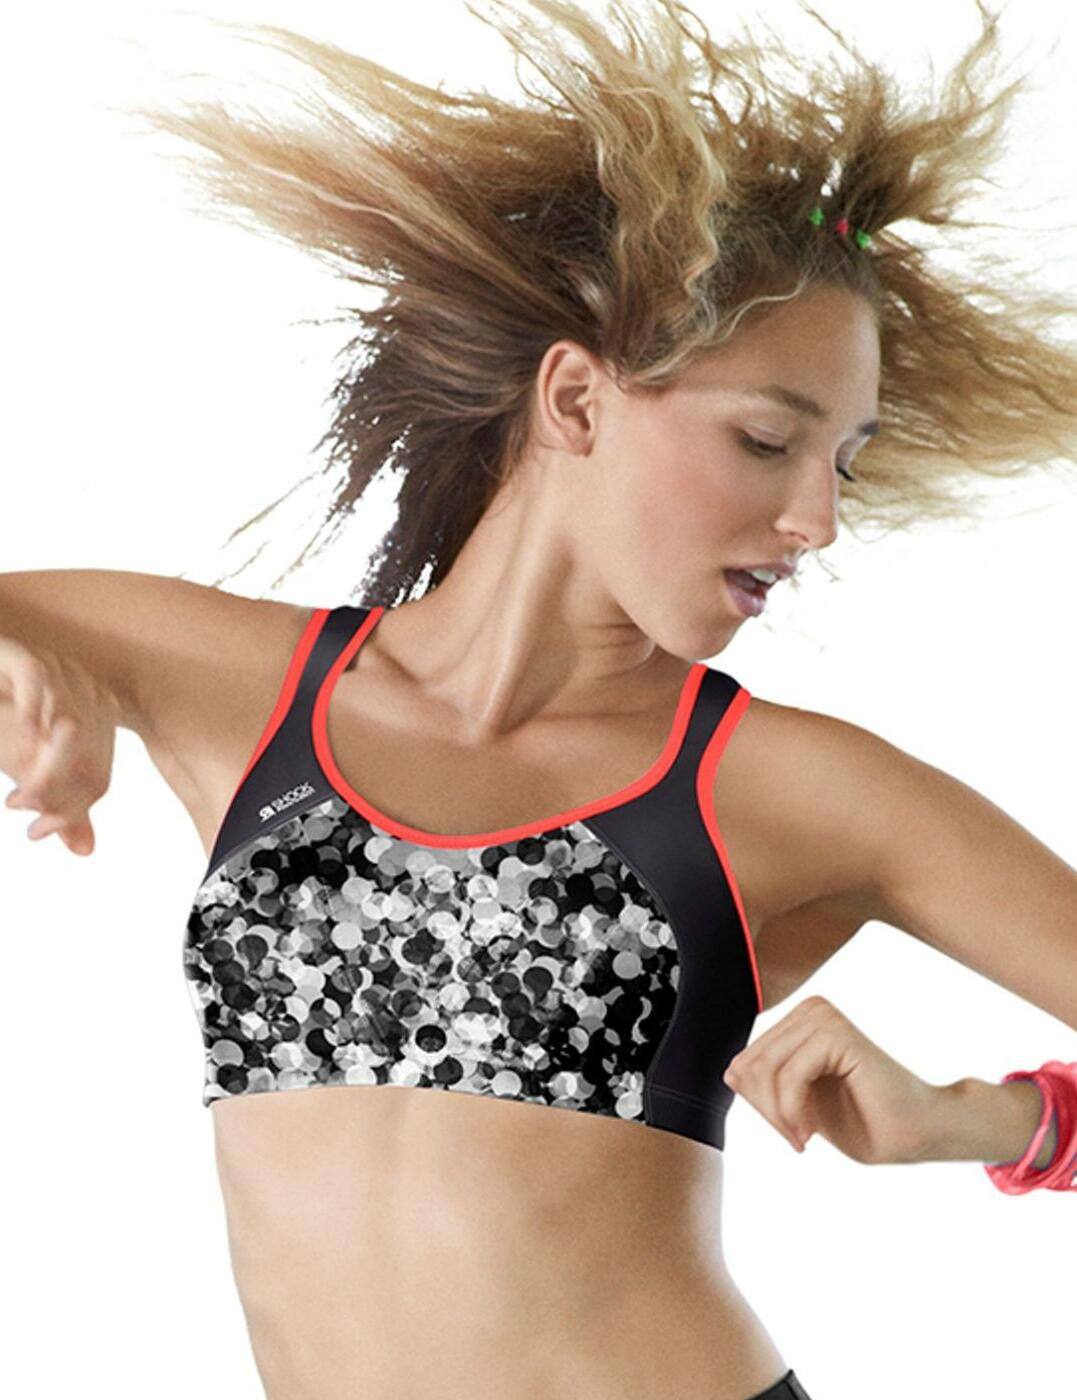 Shock Absorber Active Multi Sports Support Running Gym Bra Sports Bra - Black Bubble Print